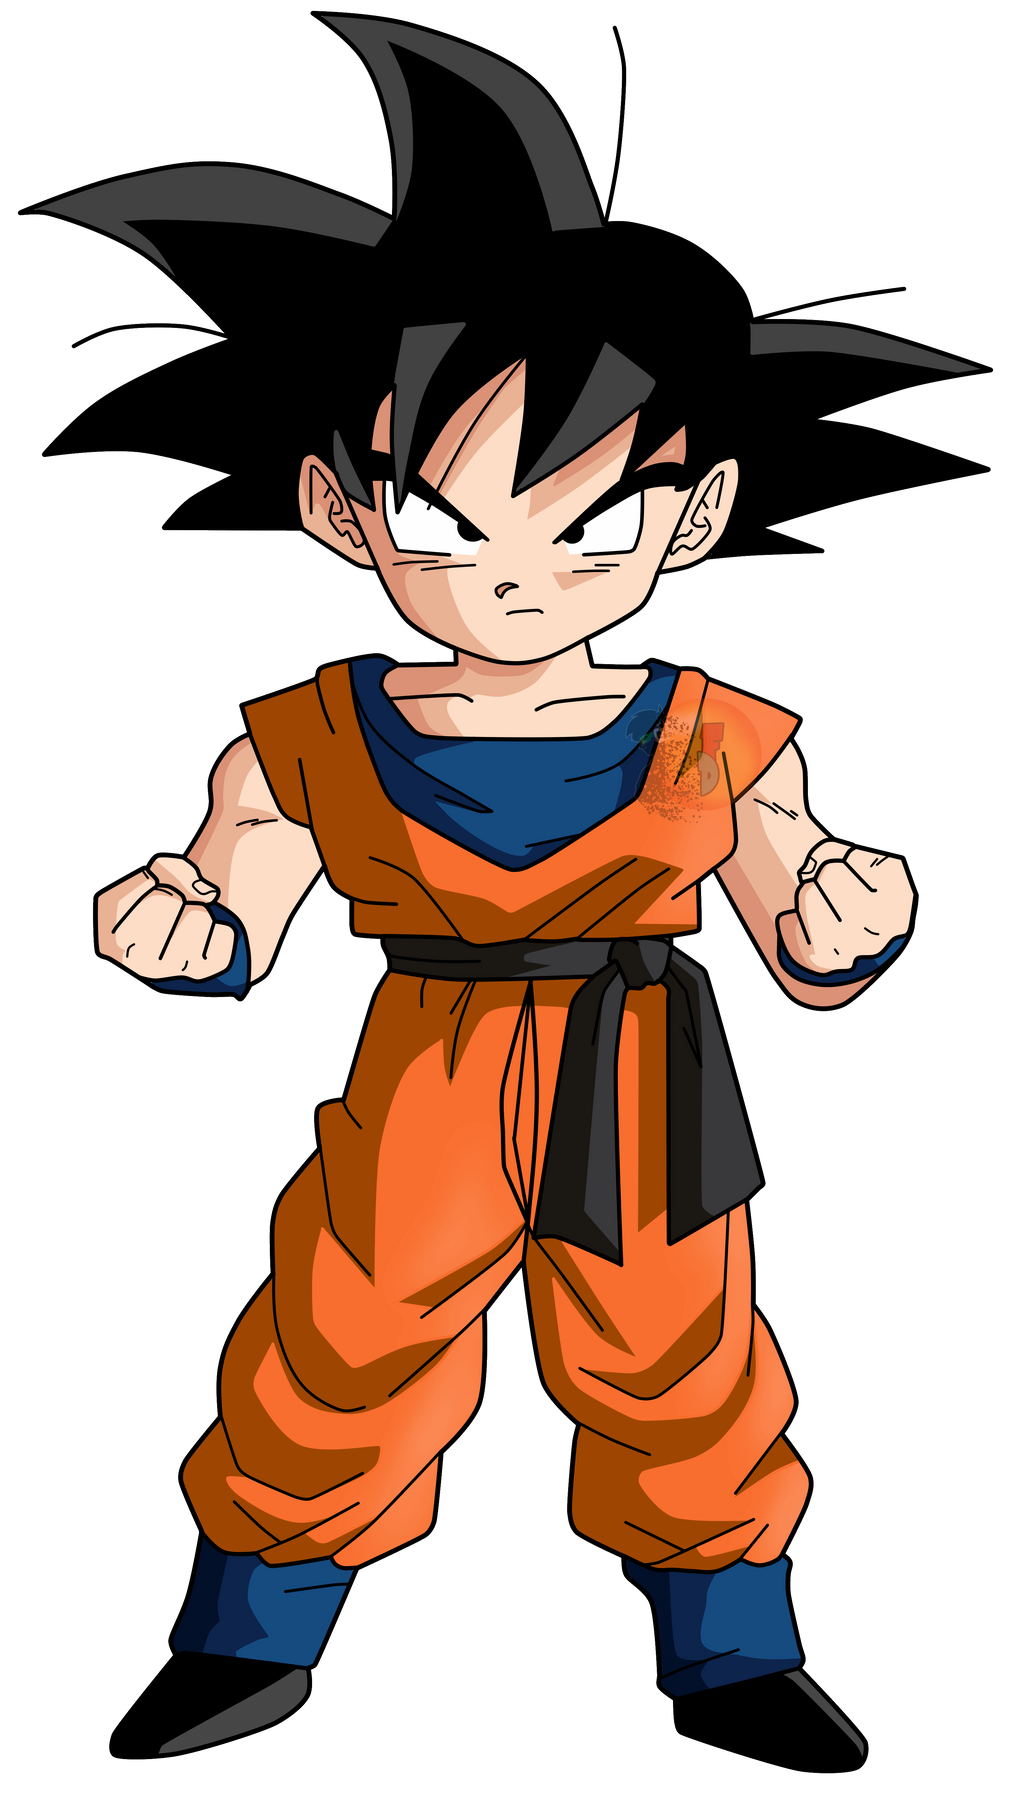 Goten #2 |FacuDibuja by FacuDibuja on DeviantArt